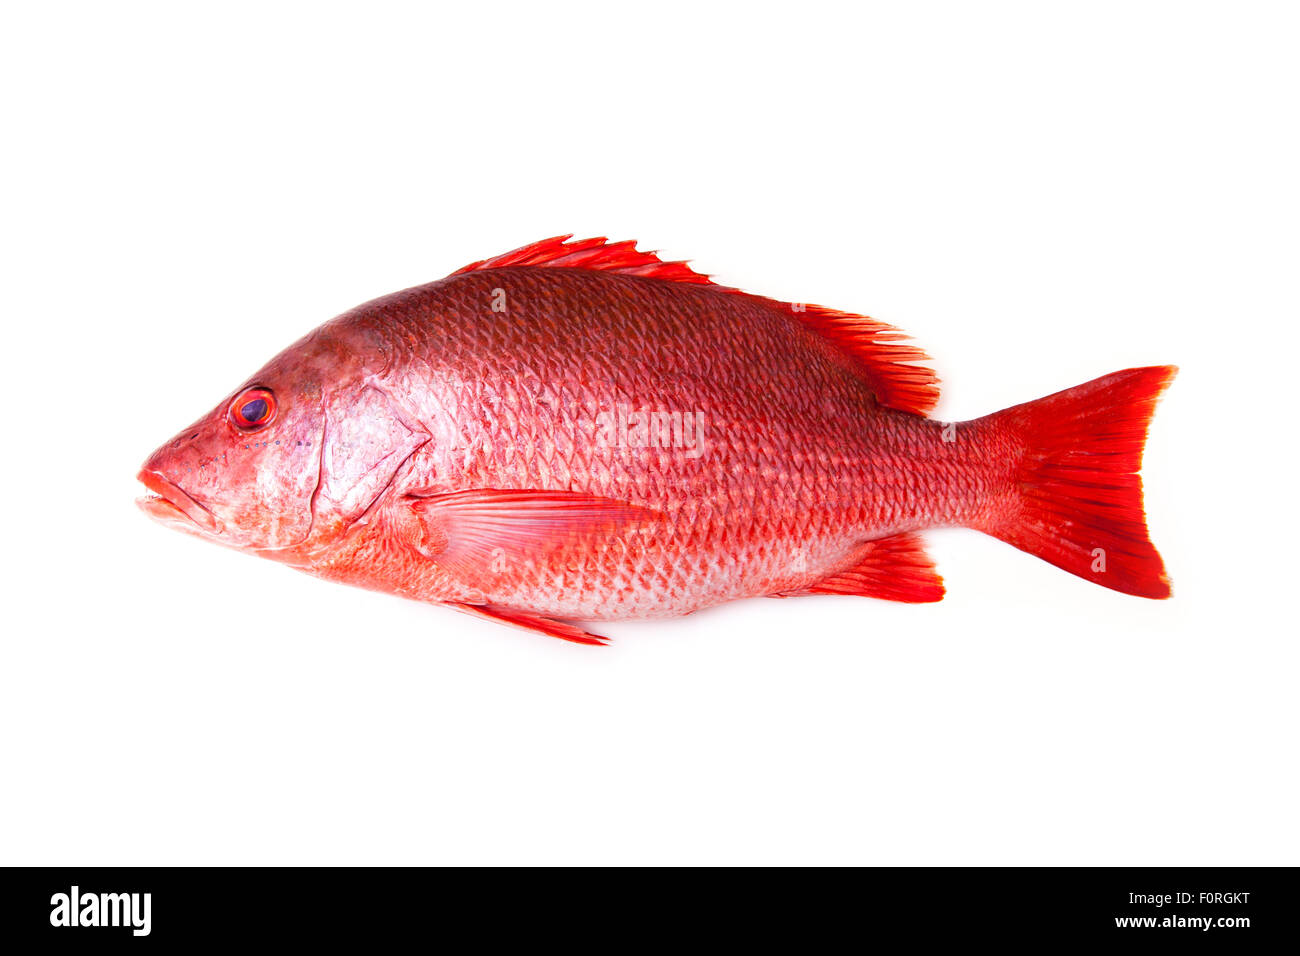 Northern Red Snapper Lutjanus campechanus fish isolated on a white background. Stock Photo